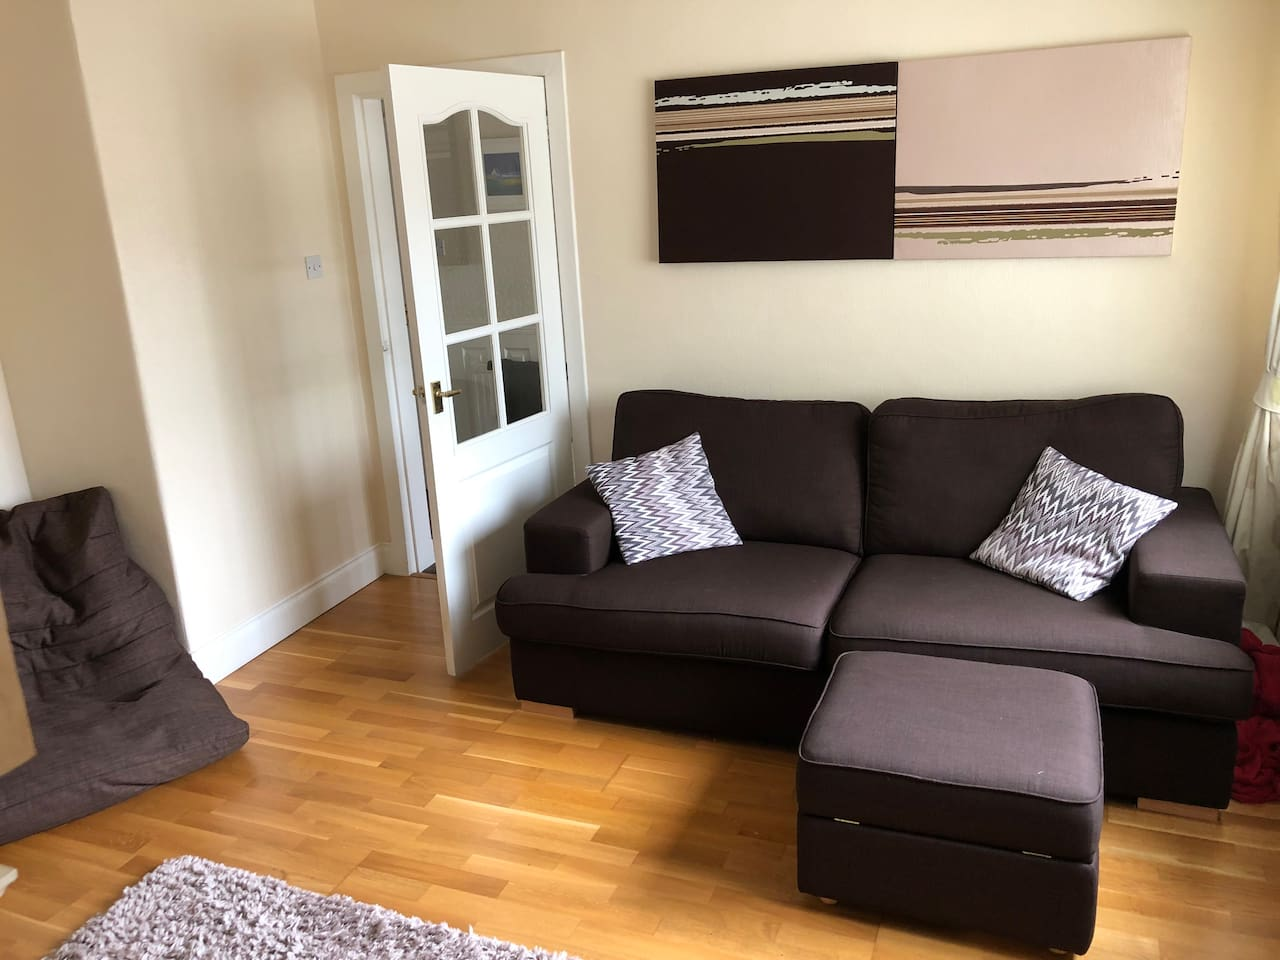 Private access living room includes very comfy 2 seater sofa and footstool as well as bean bag seat.